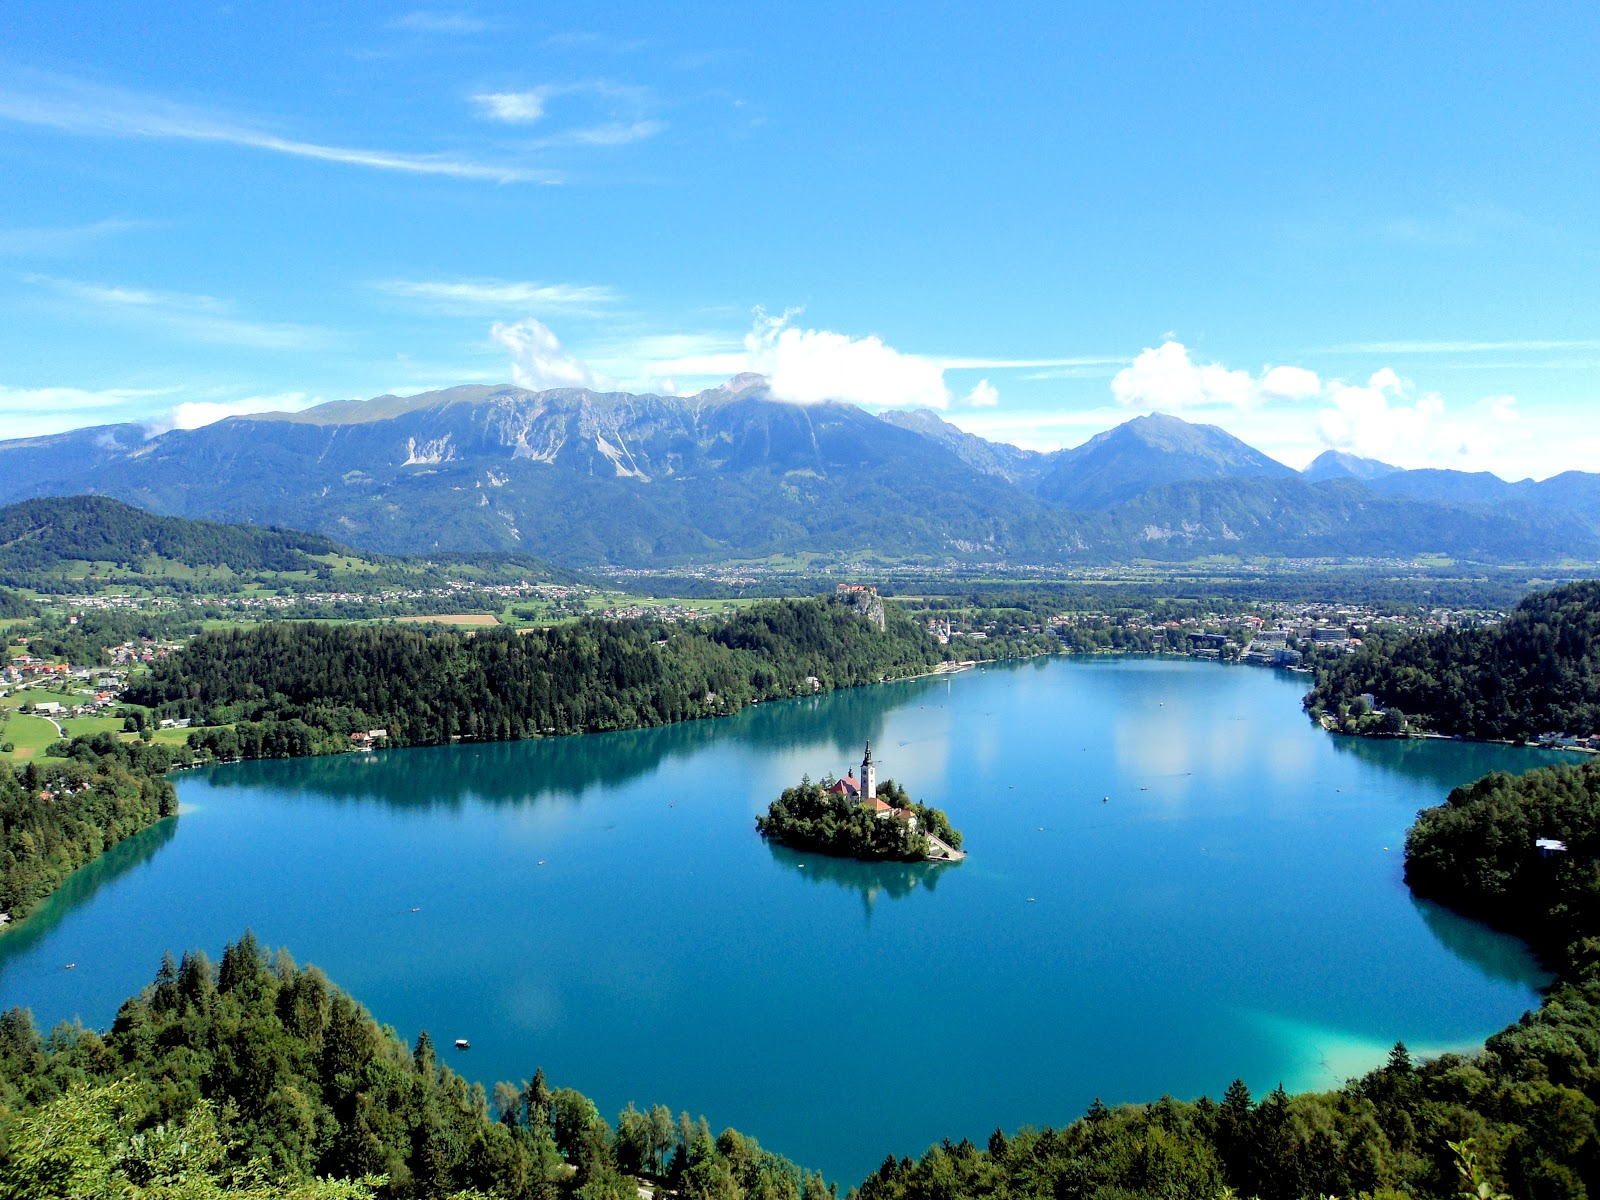 The natural wonders of Lake Bled in Slovenia.